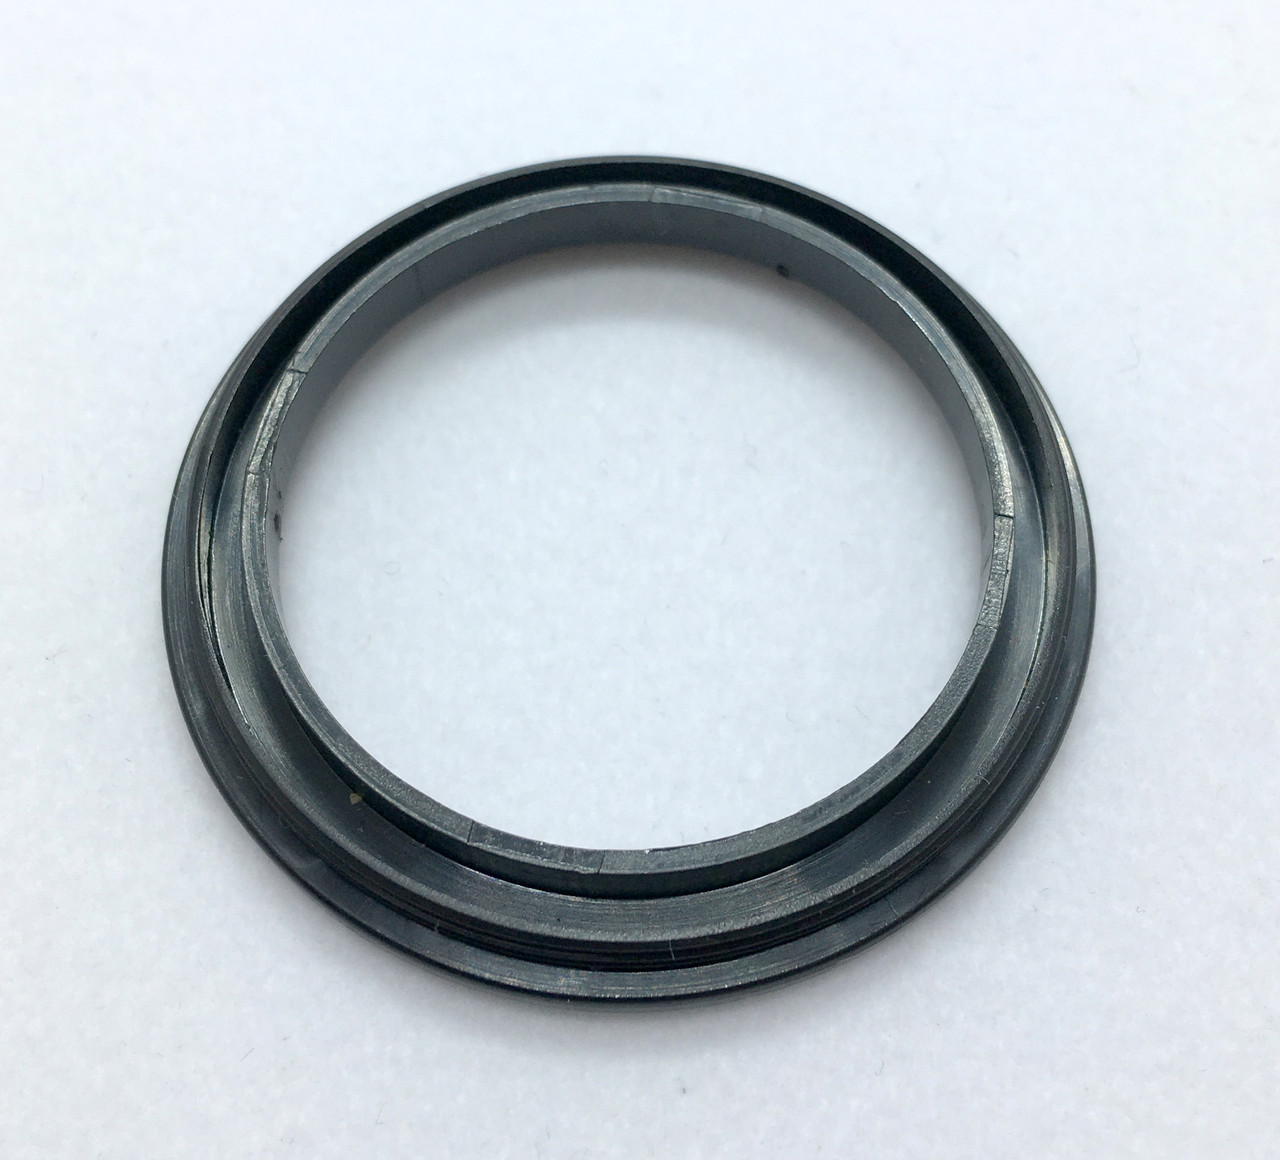 Zeagle Scuba Diving - Flathead 7- Diaphragm Purge Cover Ring 342-0242-KA